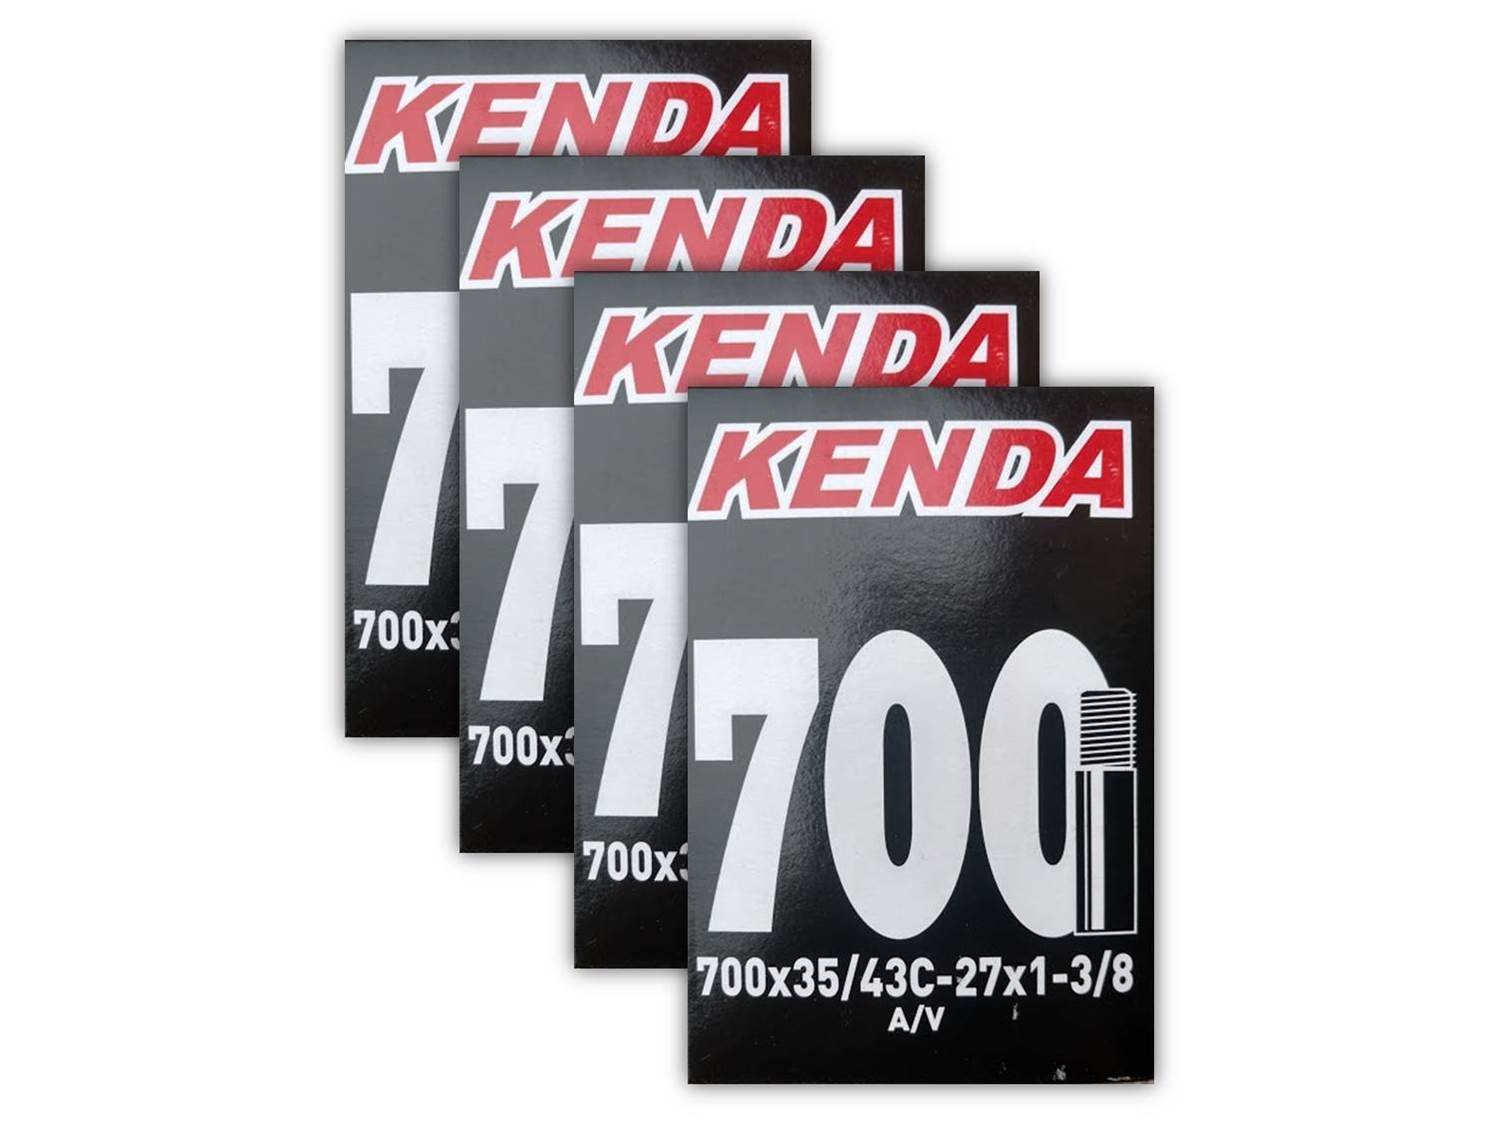 Kenda. 700x35-43c (27x1-3/8) Schrader Valve Bike Tube Bundle - FOUR (4) PACK